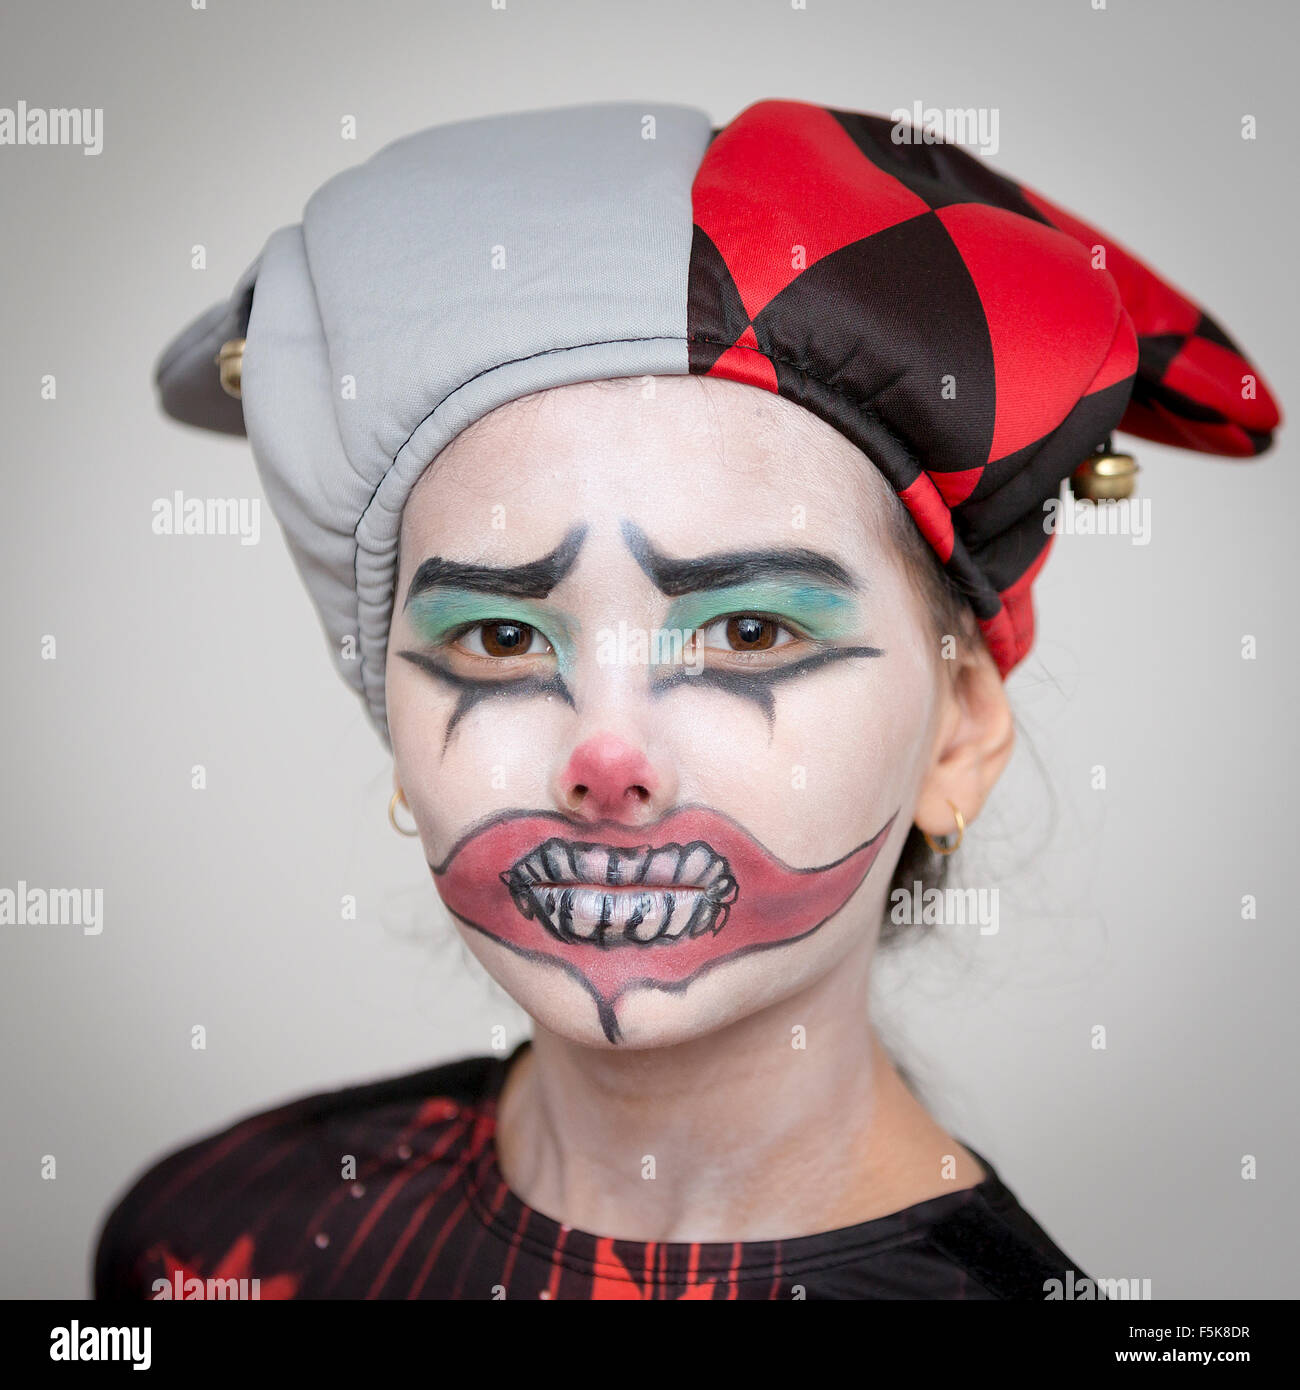 portrait of a young 10 year old british thai girl dressed for halloween with clown face paint